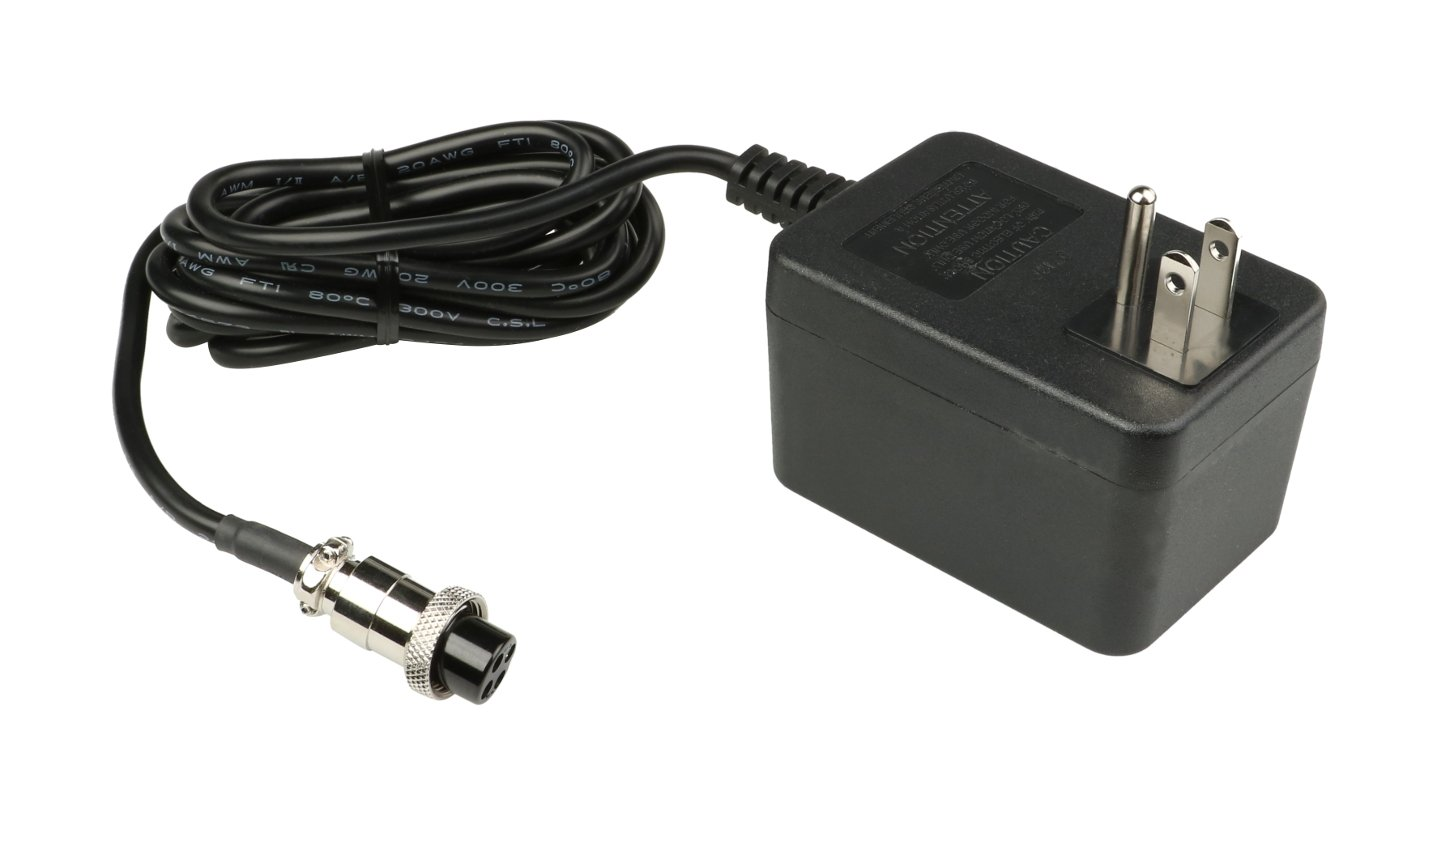 Power Supply for SSA324